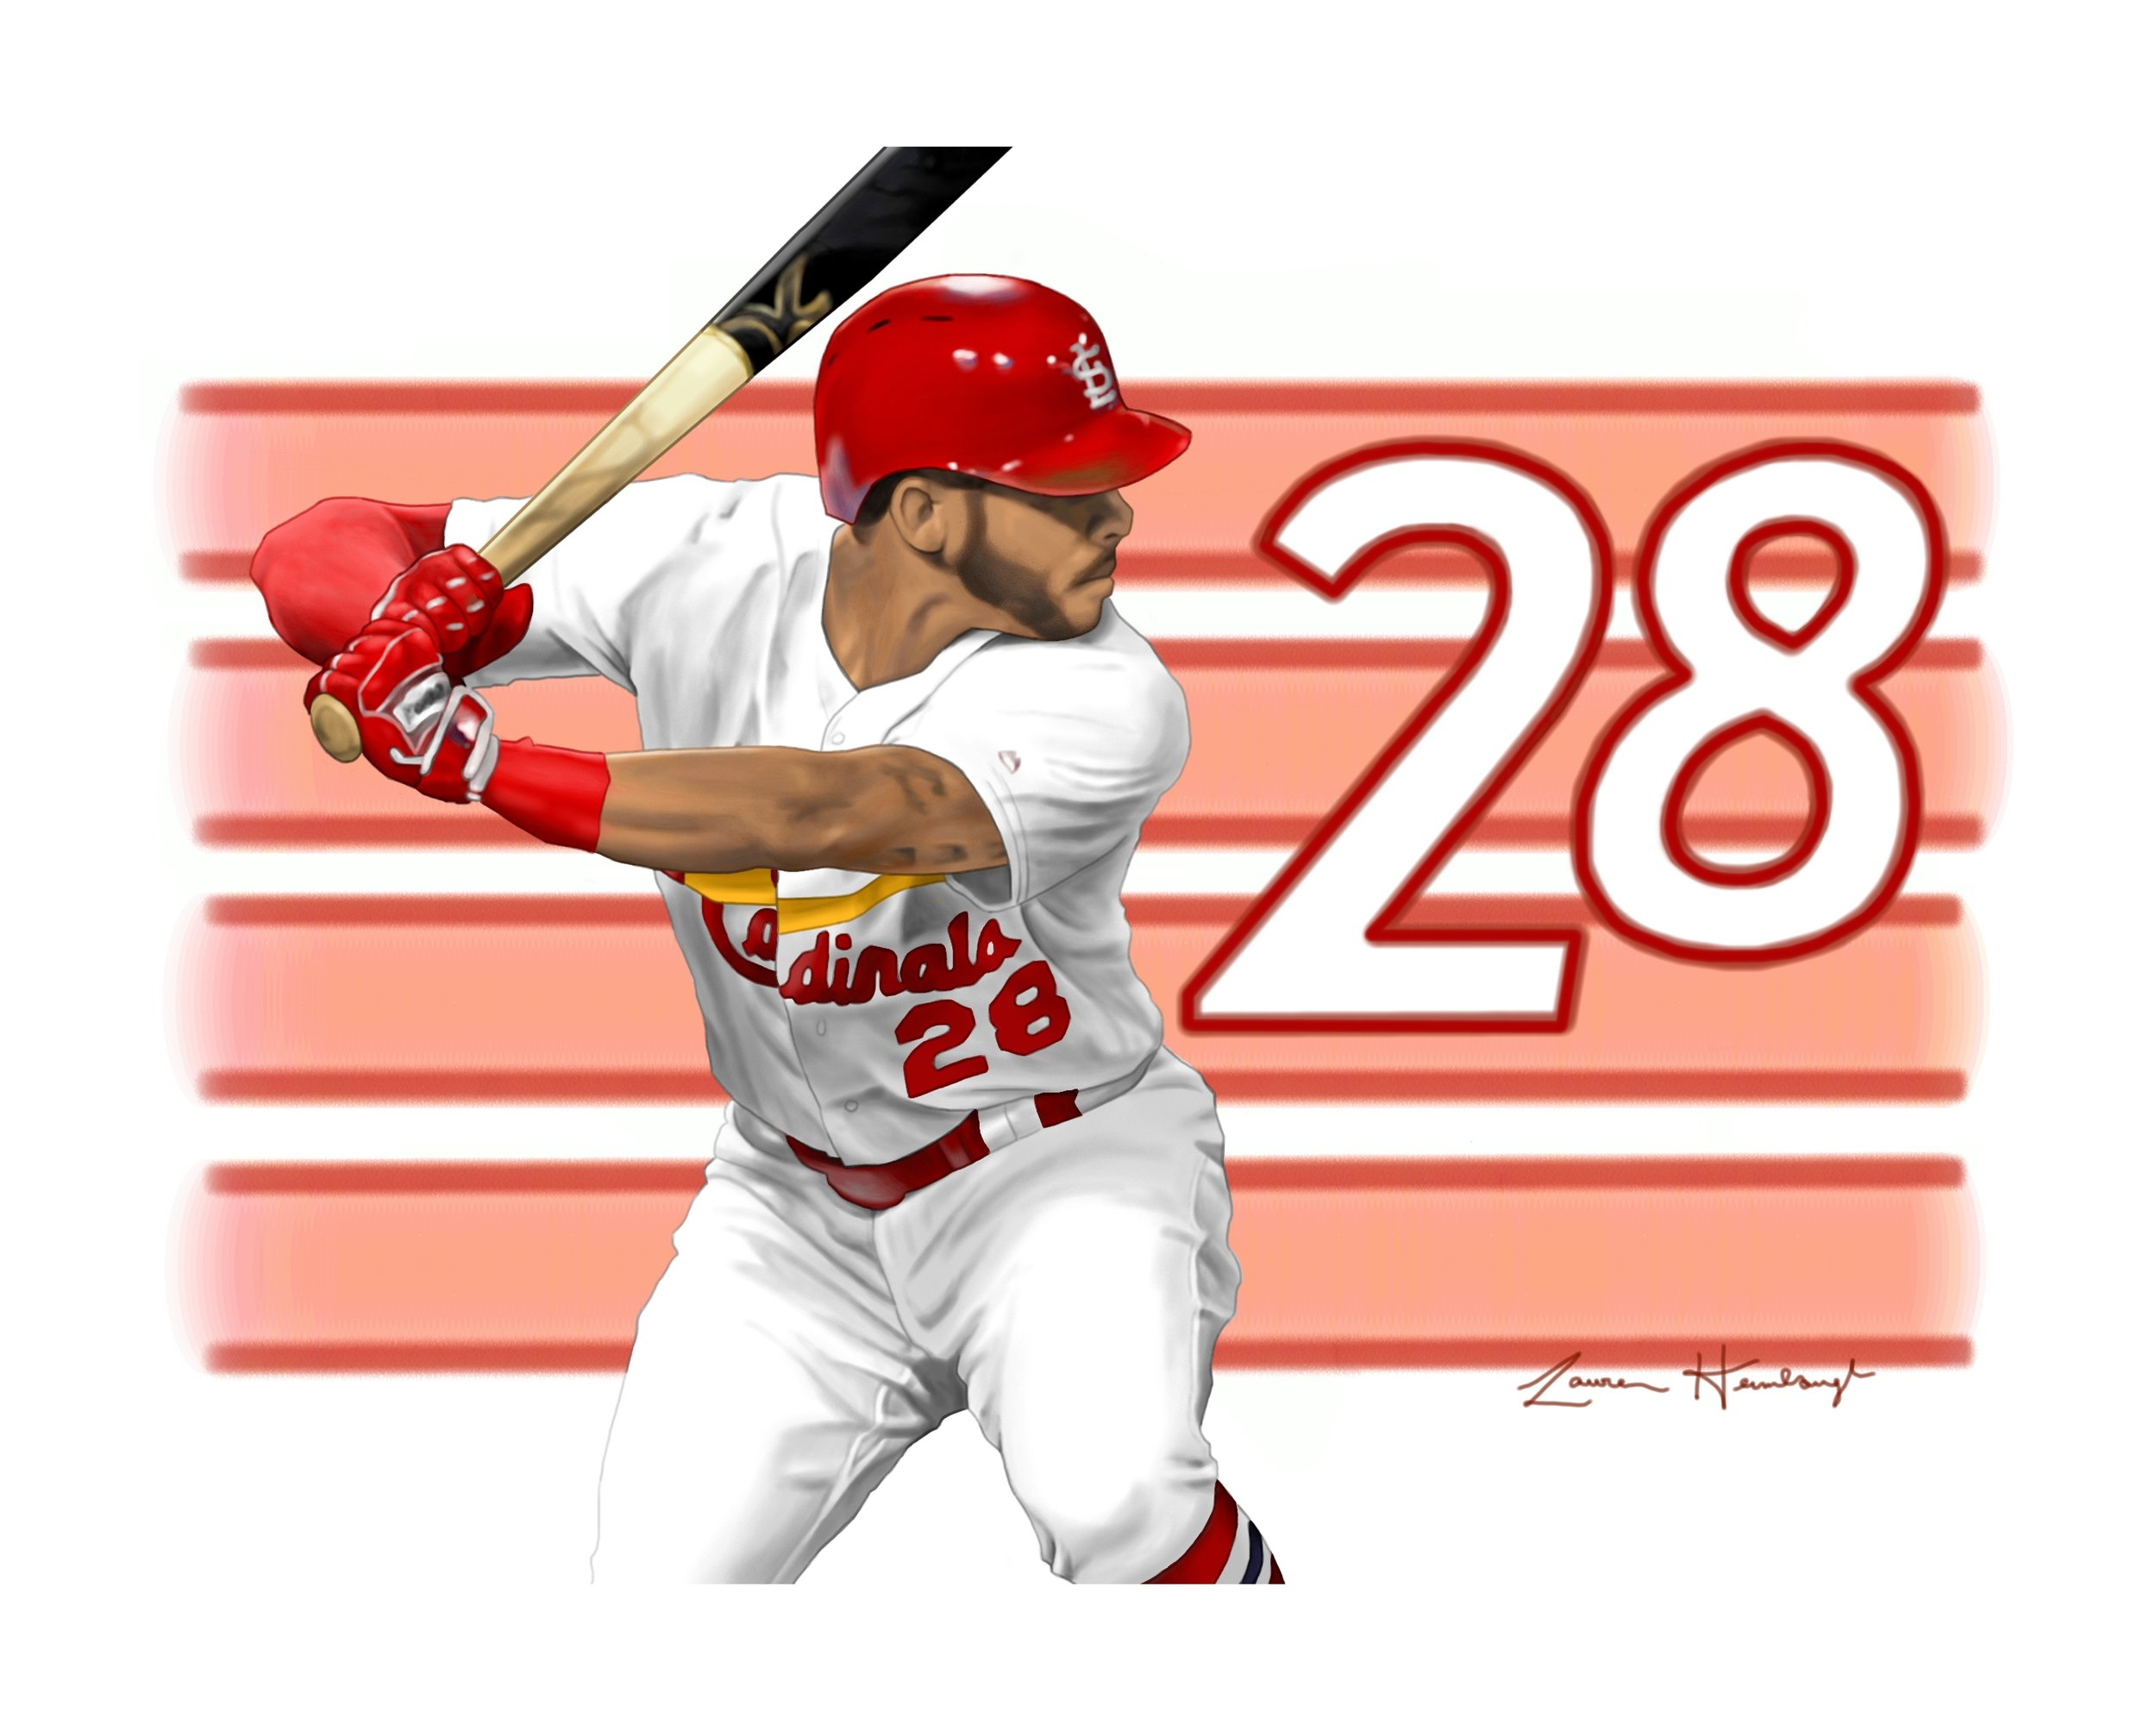 Tommy Pham - Ex St. Louis Cardinals' Outfielder (2018)